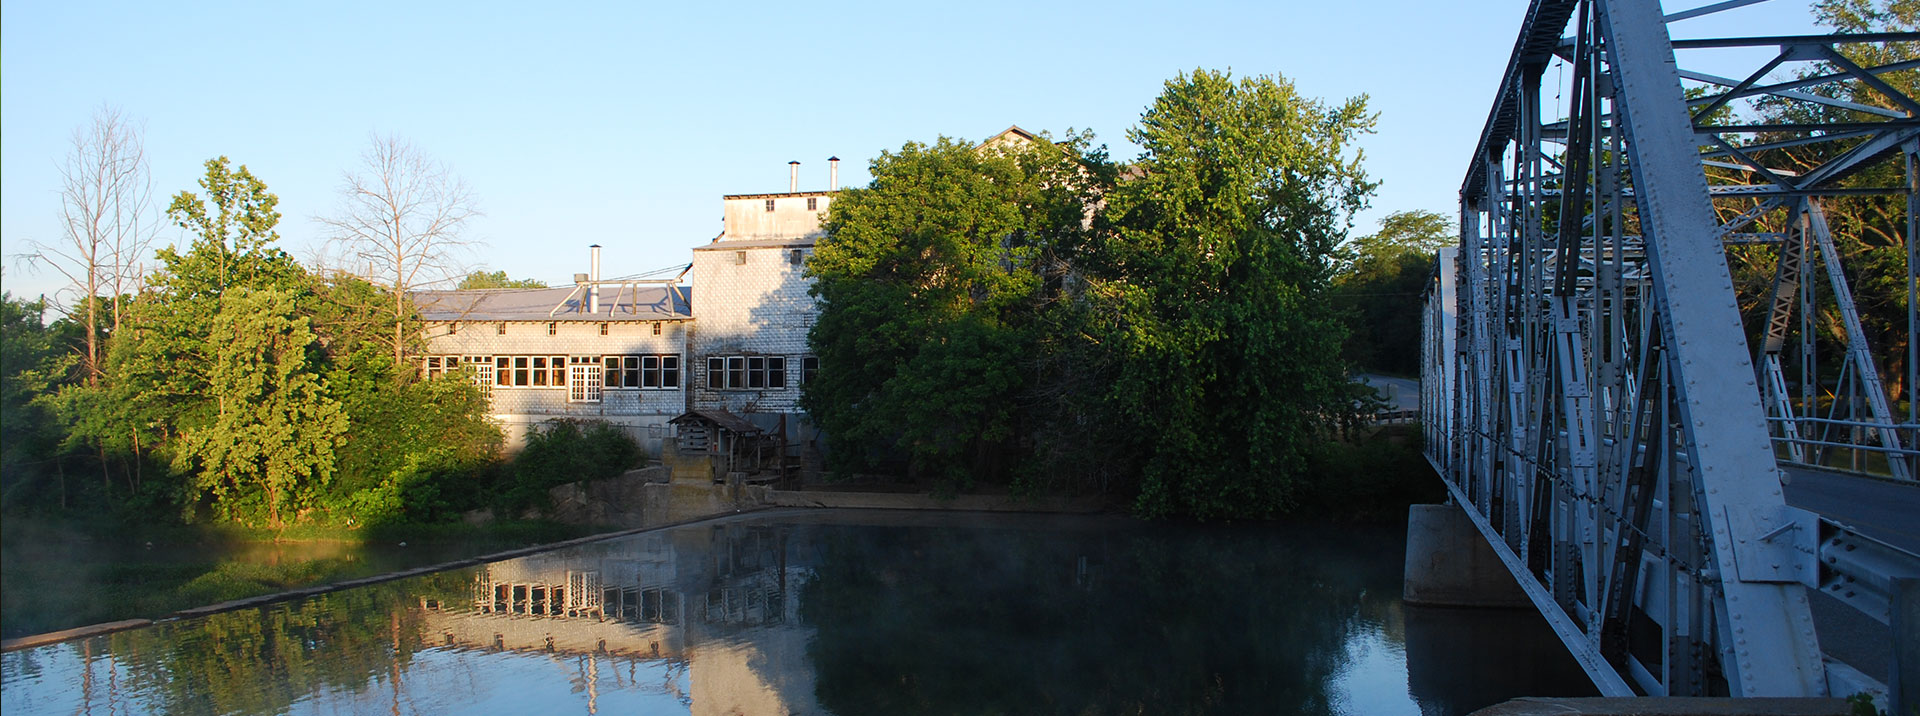 Ozark Mill with bridge and soft river.